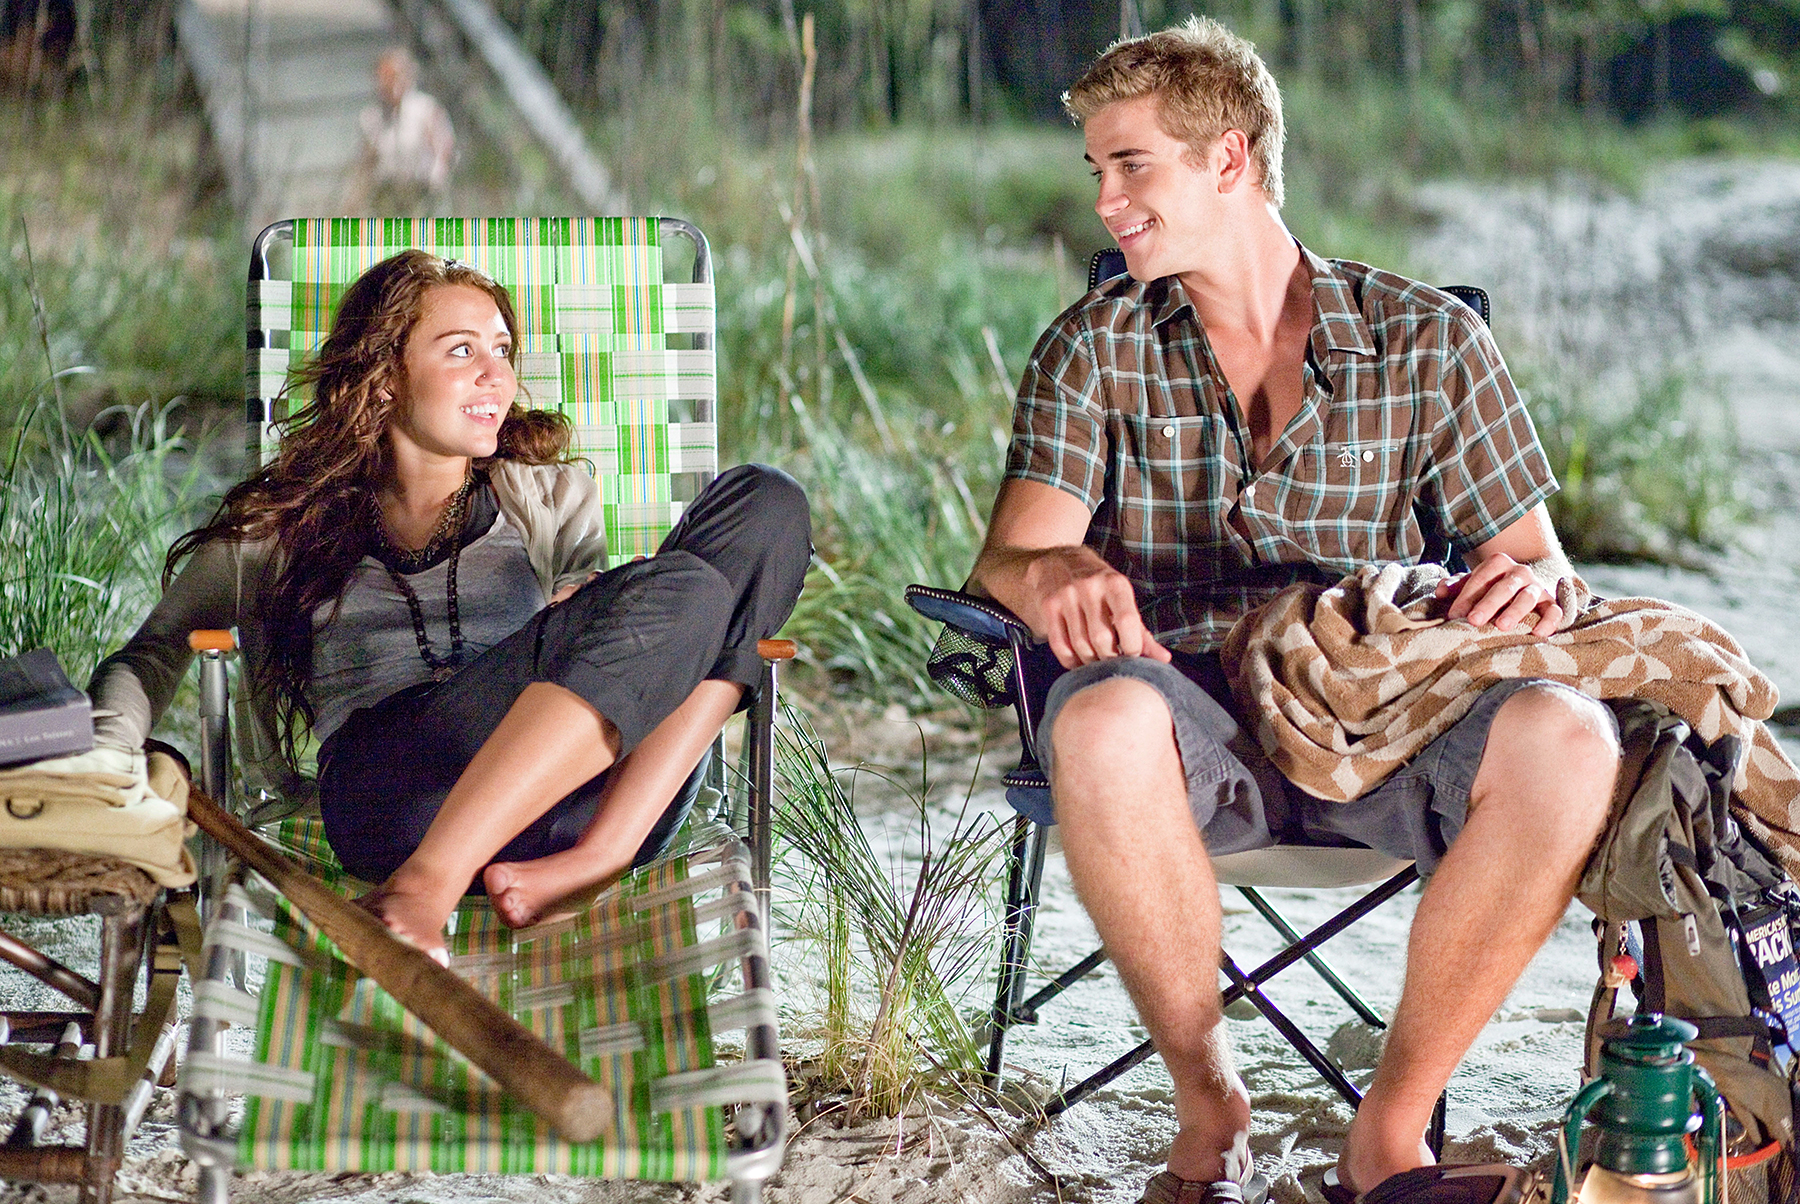 Miley Cyrus Liam Hemsworth The Last Song